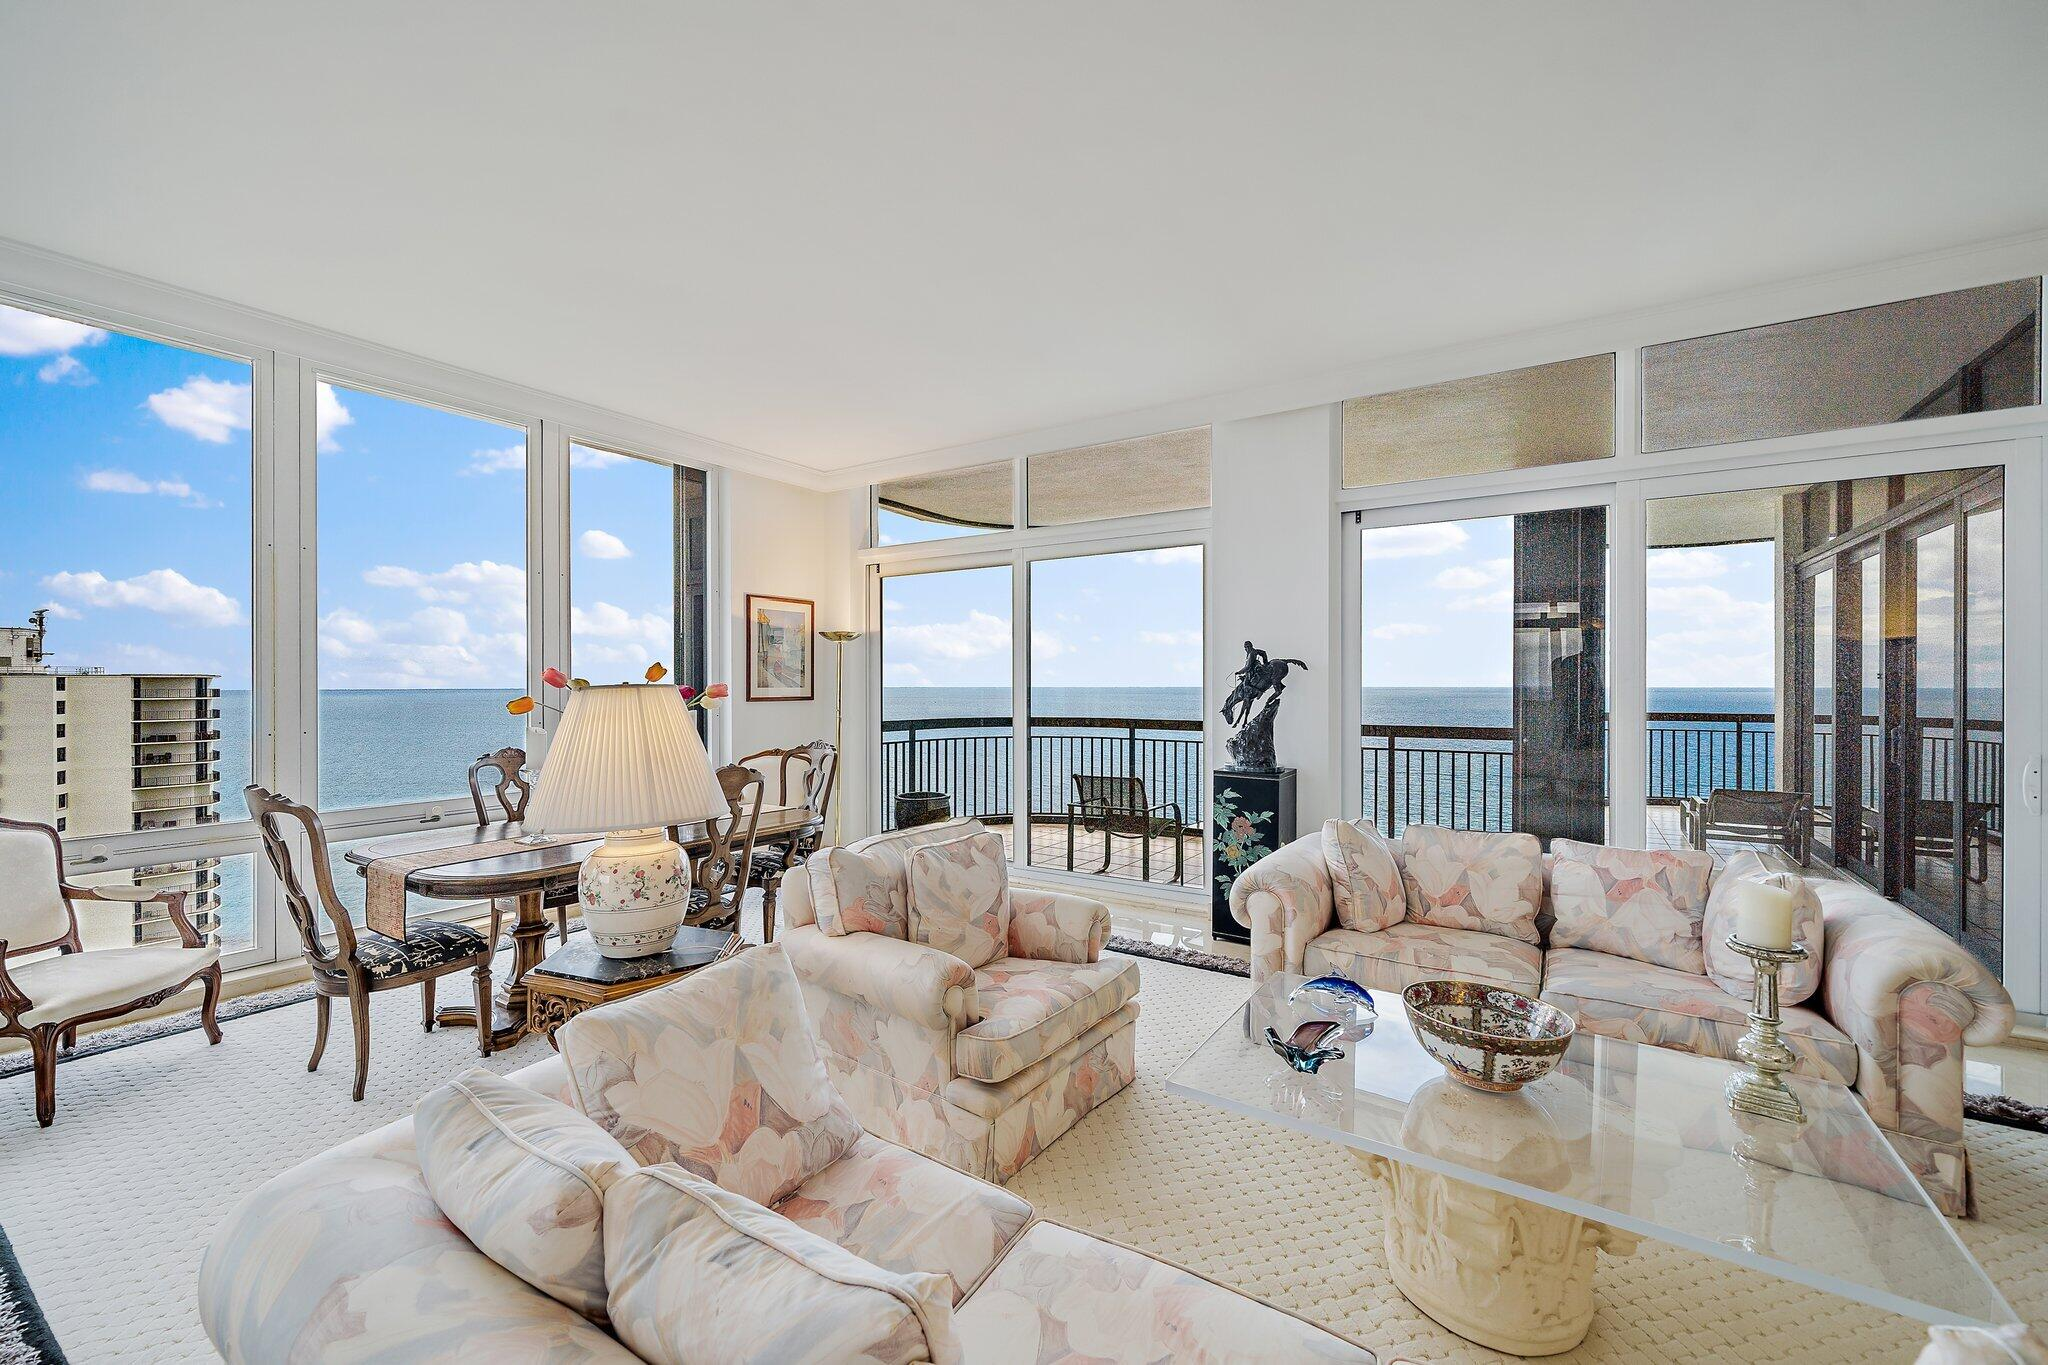 This Penthouse unit with 10' ceilings enjoys panoramic views of the ocean, intracoastal, and MacArthur State Park.  Eastpointe II was designed with just three units per floor, and none of the exterior walls of each unit meet for maximum privacy.  This 2BR, 2.1 BA suite also has a large den with some of the finest views looking north up Singer Island.